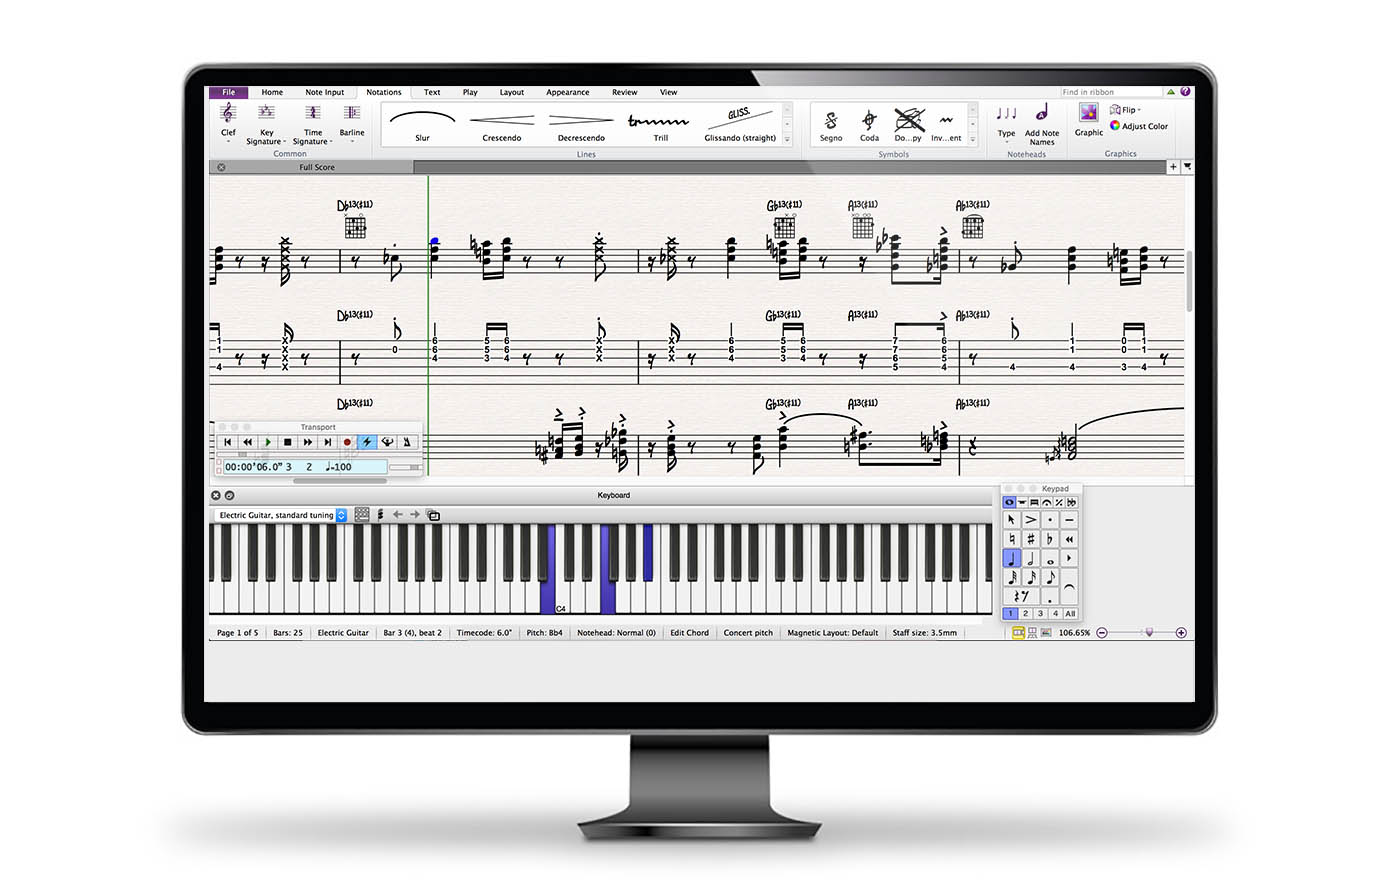 Sibelius music notation software in monitor